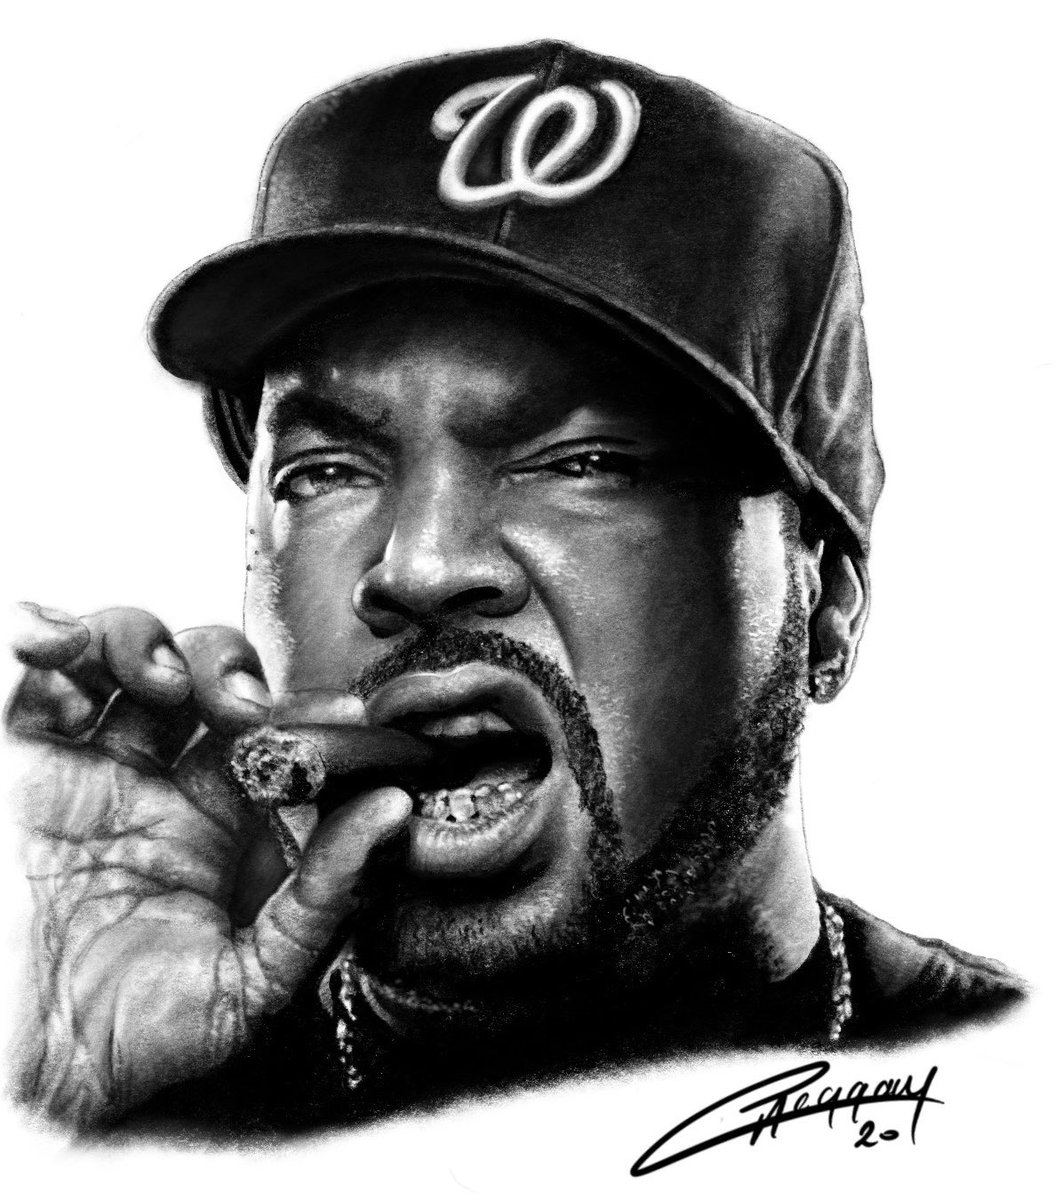 Here's the Ice Cube pencil shaded portrait from yesterday on his own from the wee project I am working on on the iPad whilst in lockdown.    Like, Retweet, Comment  #icecube #NWA #WestSide #StraightOuttaCompton #portrait #rap #hiphop #hiphopartist #rapper #gangstapic.twitter.com/Qk1ebqyCWN